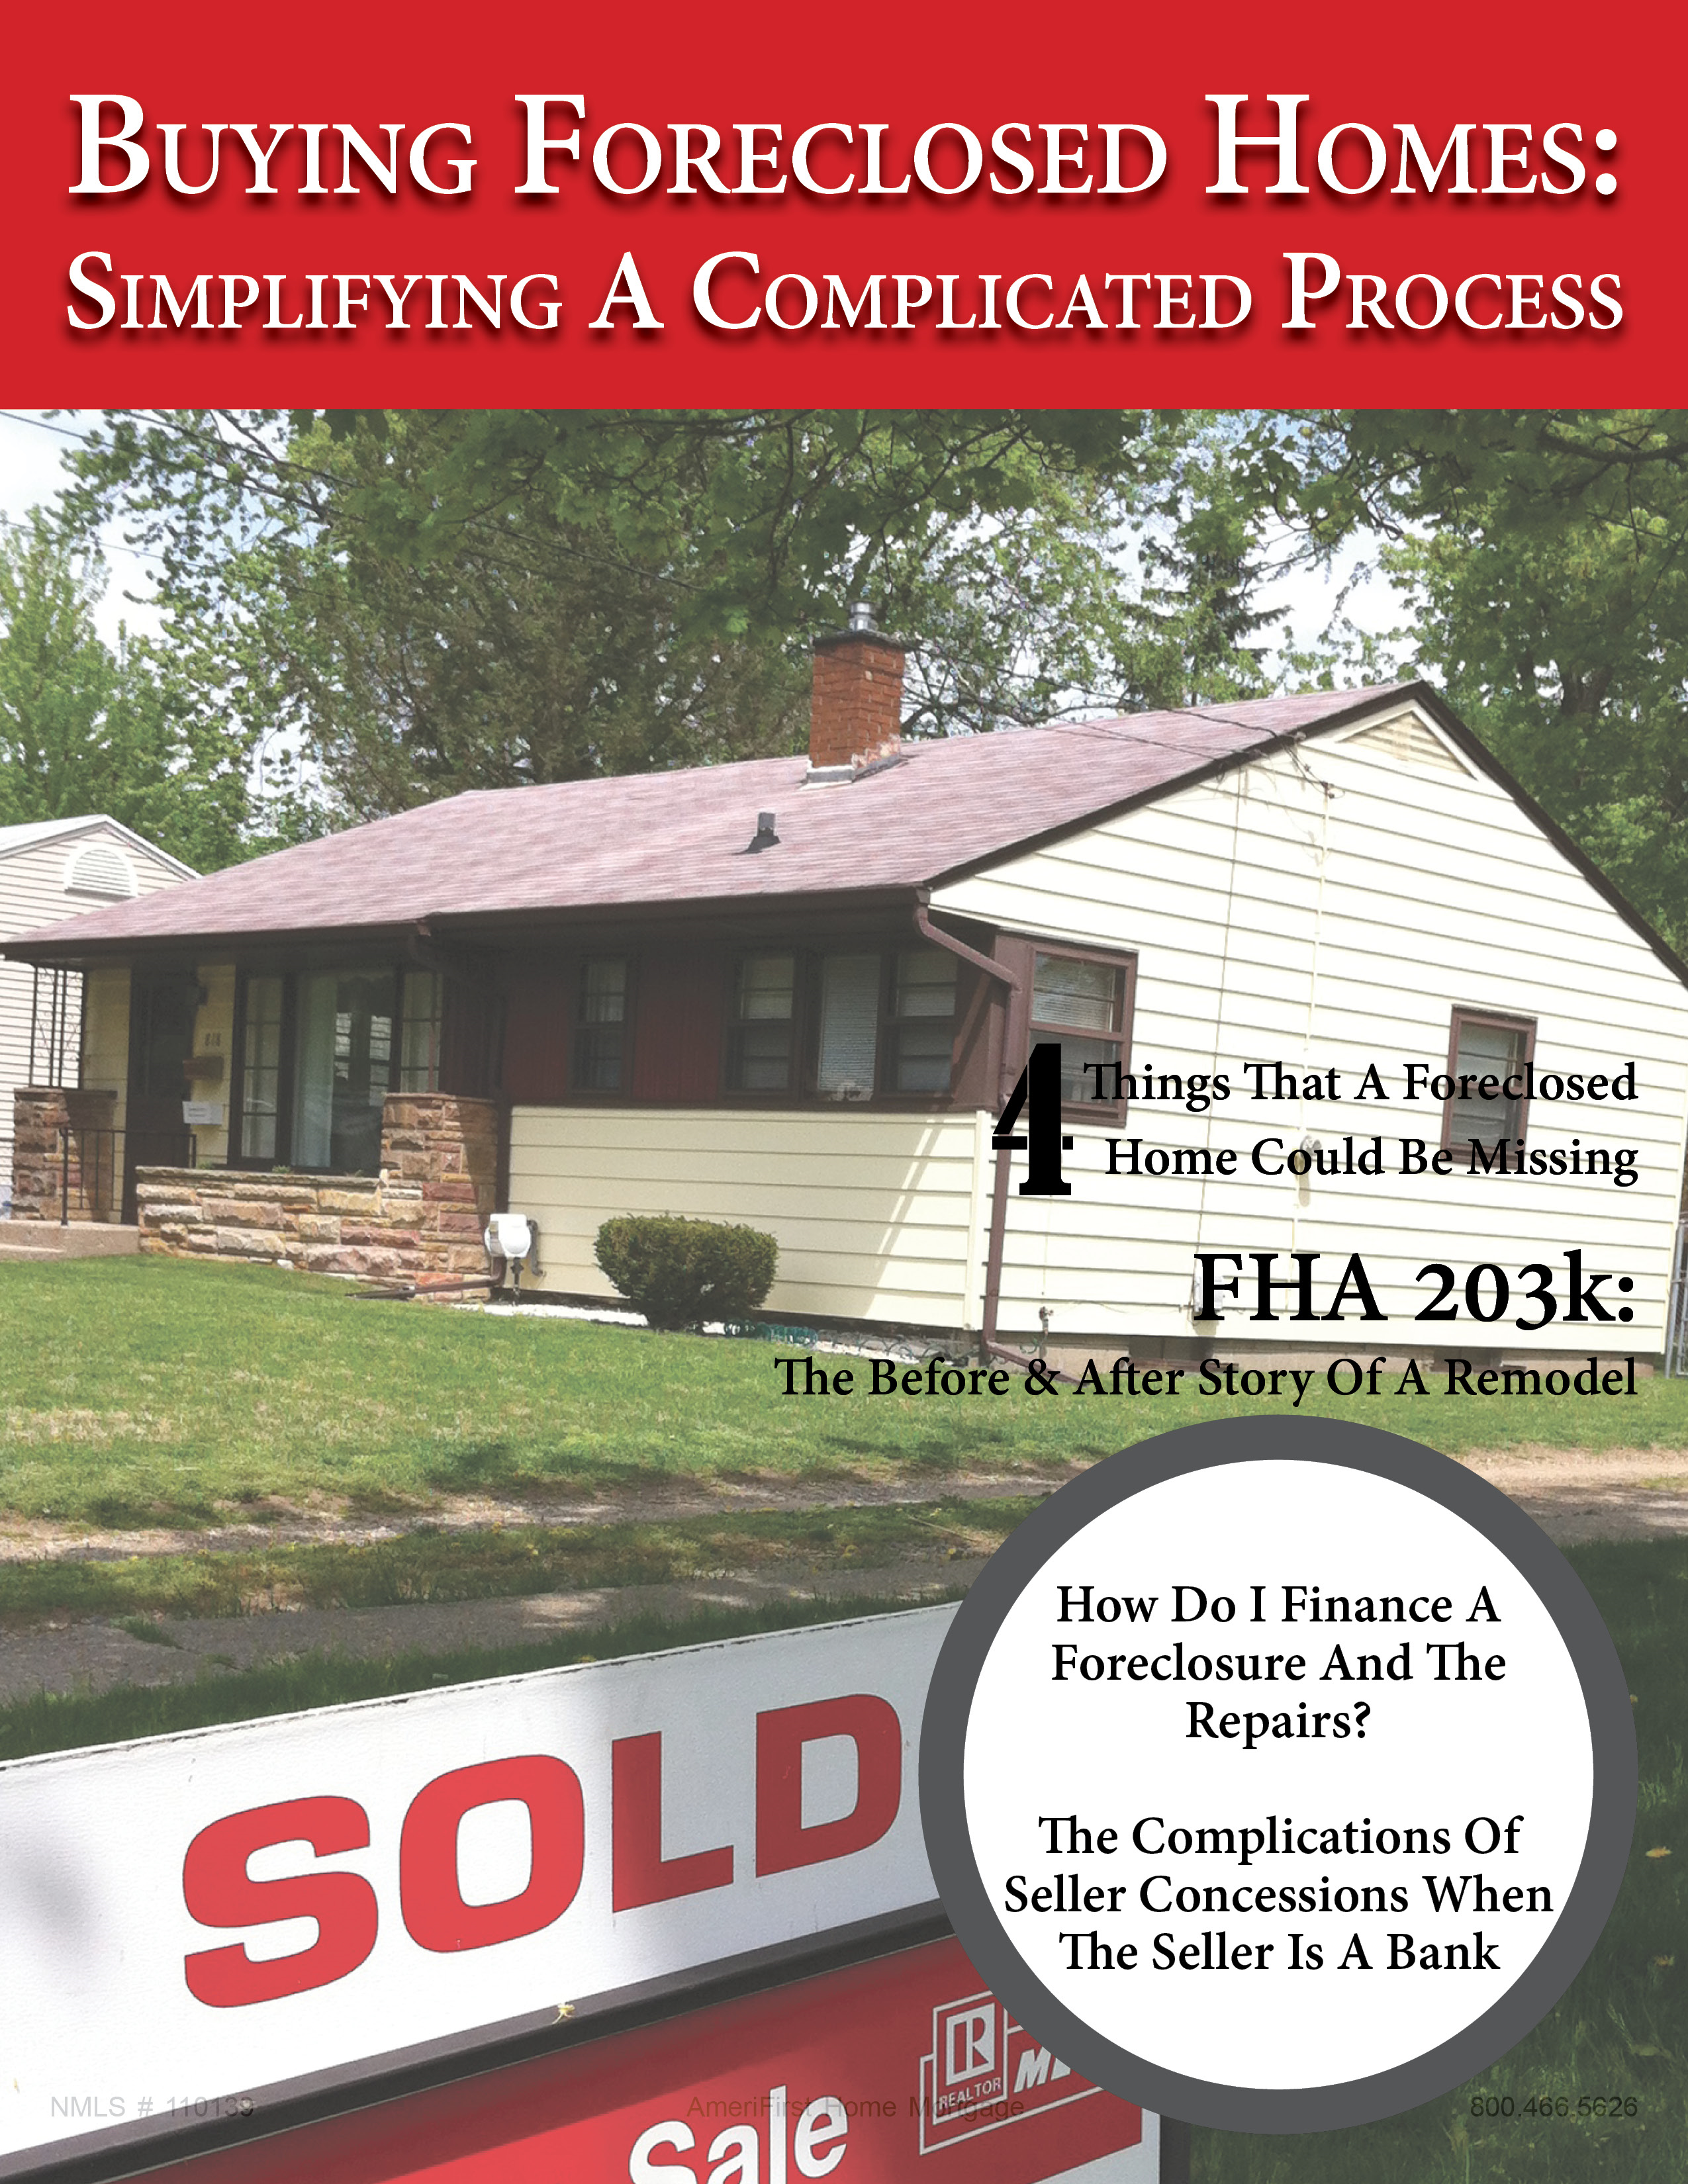 Buying-Foreclosed-Homes-What-You-Need-to-Know-About-Repairs_250